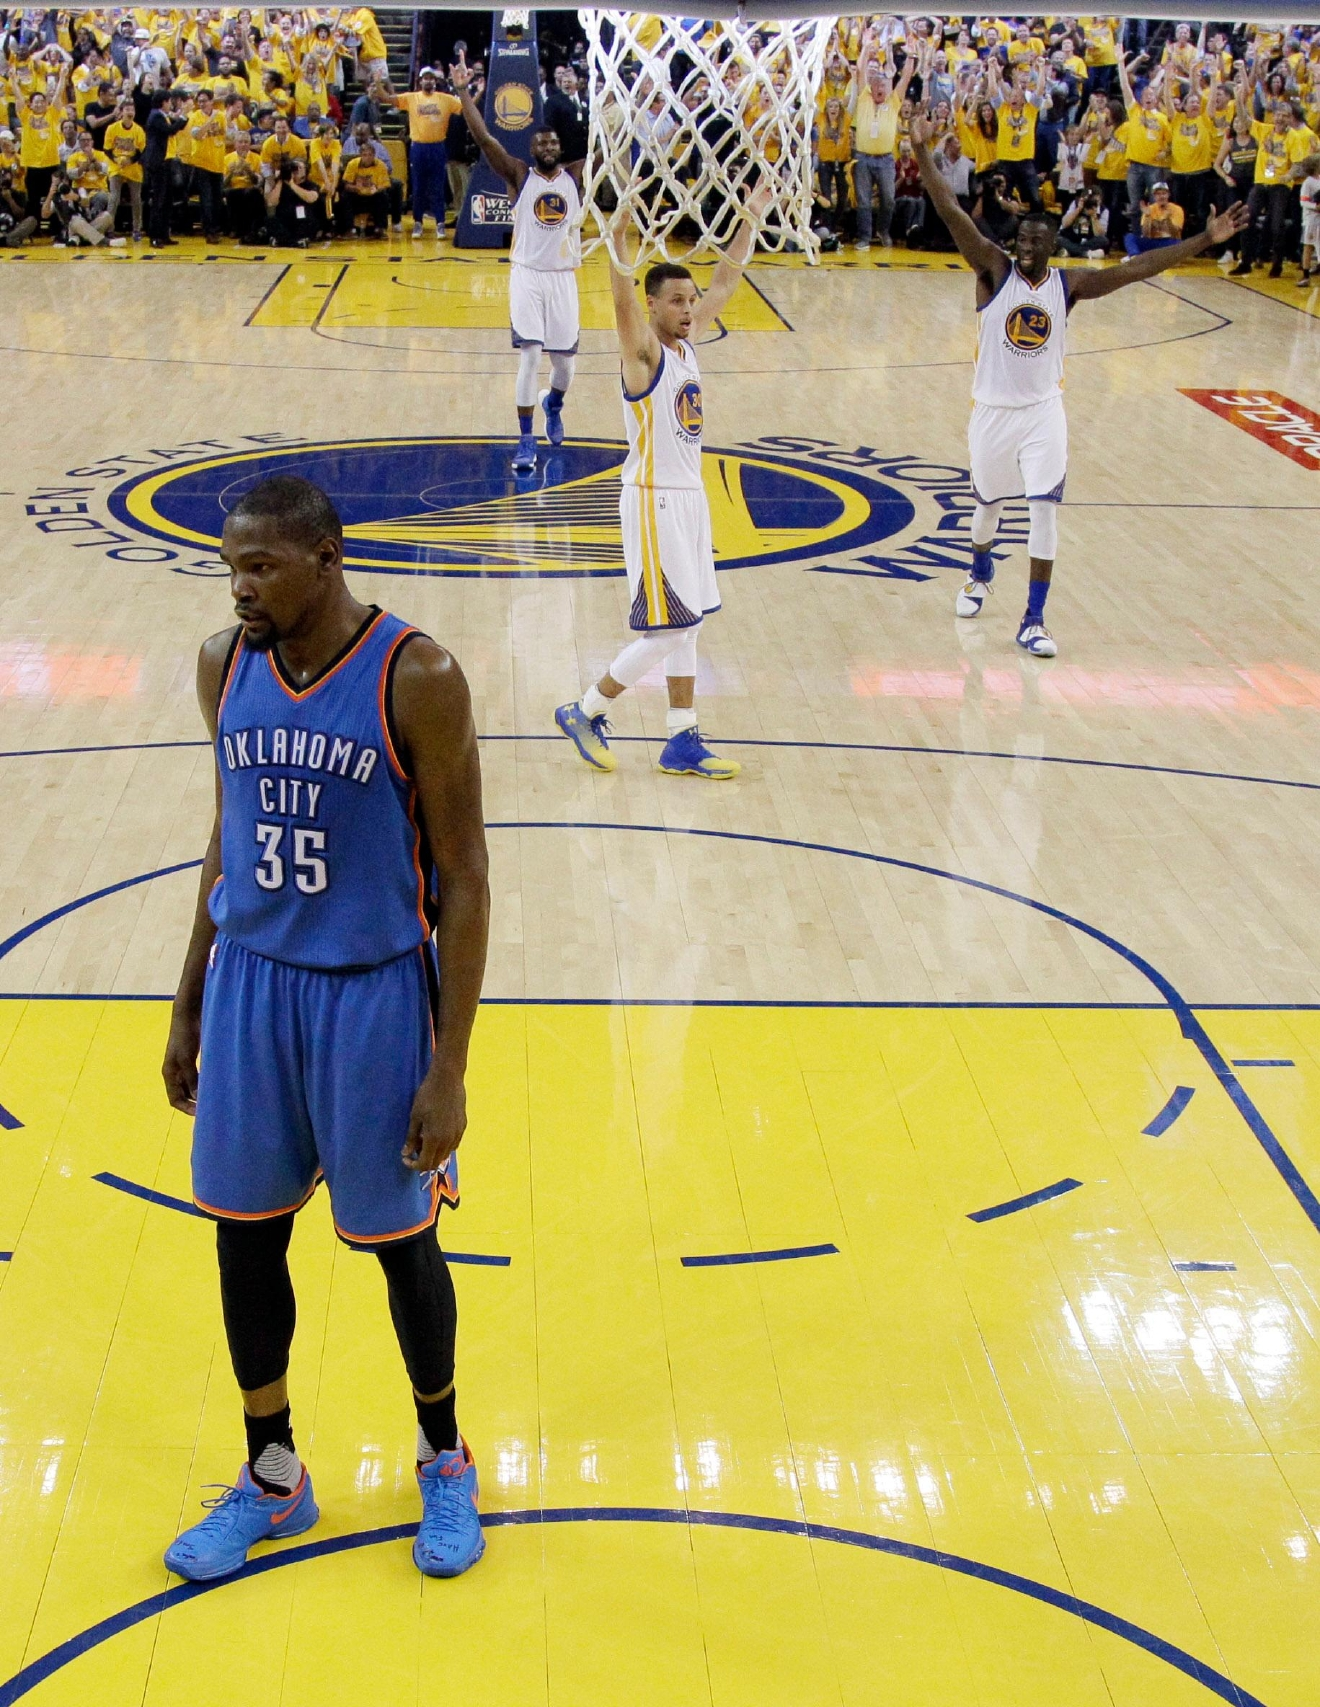 Oklahoma City Thunder's Kevin Durant (35) stands under the basket as the Golden State Warriors celebrate a score during the first half in Game 2 of the NBA basketball Western Conference finals Wednesday, May 18, 2016, in Oakland, Calif. Golden State won 118-91. (AP Photo/Marcio Jose Sanchez)